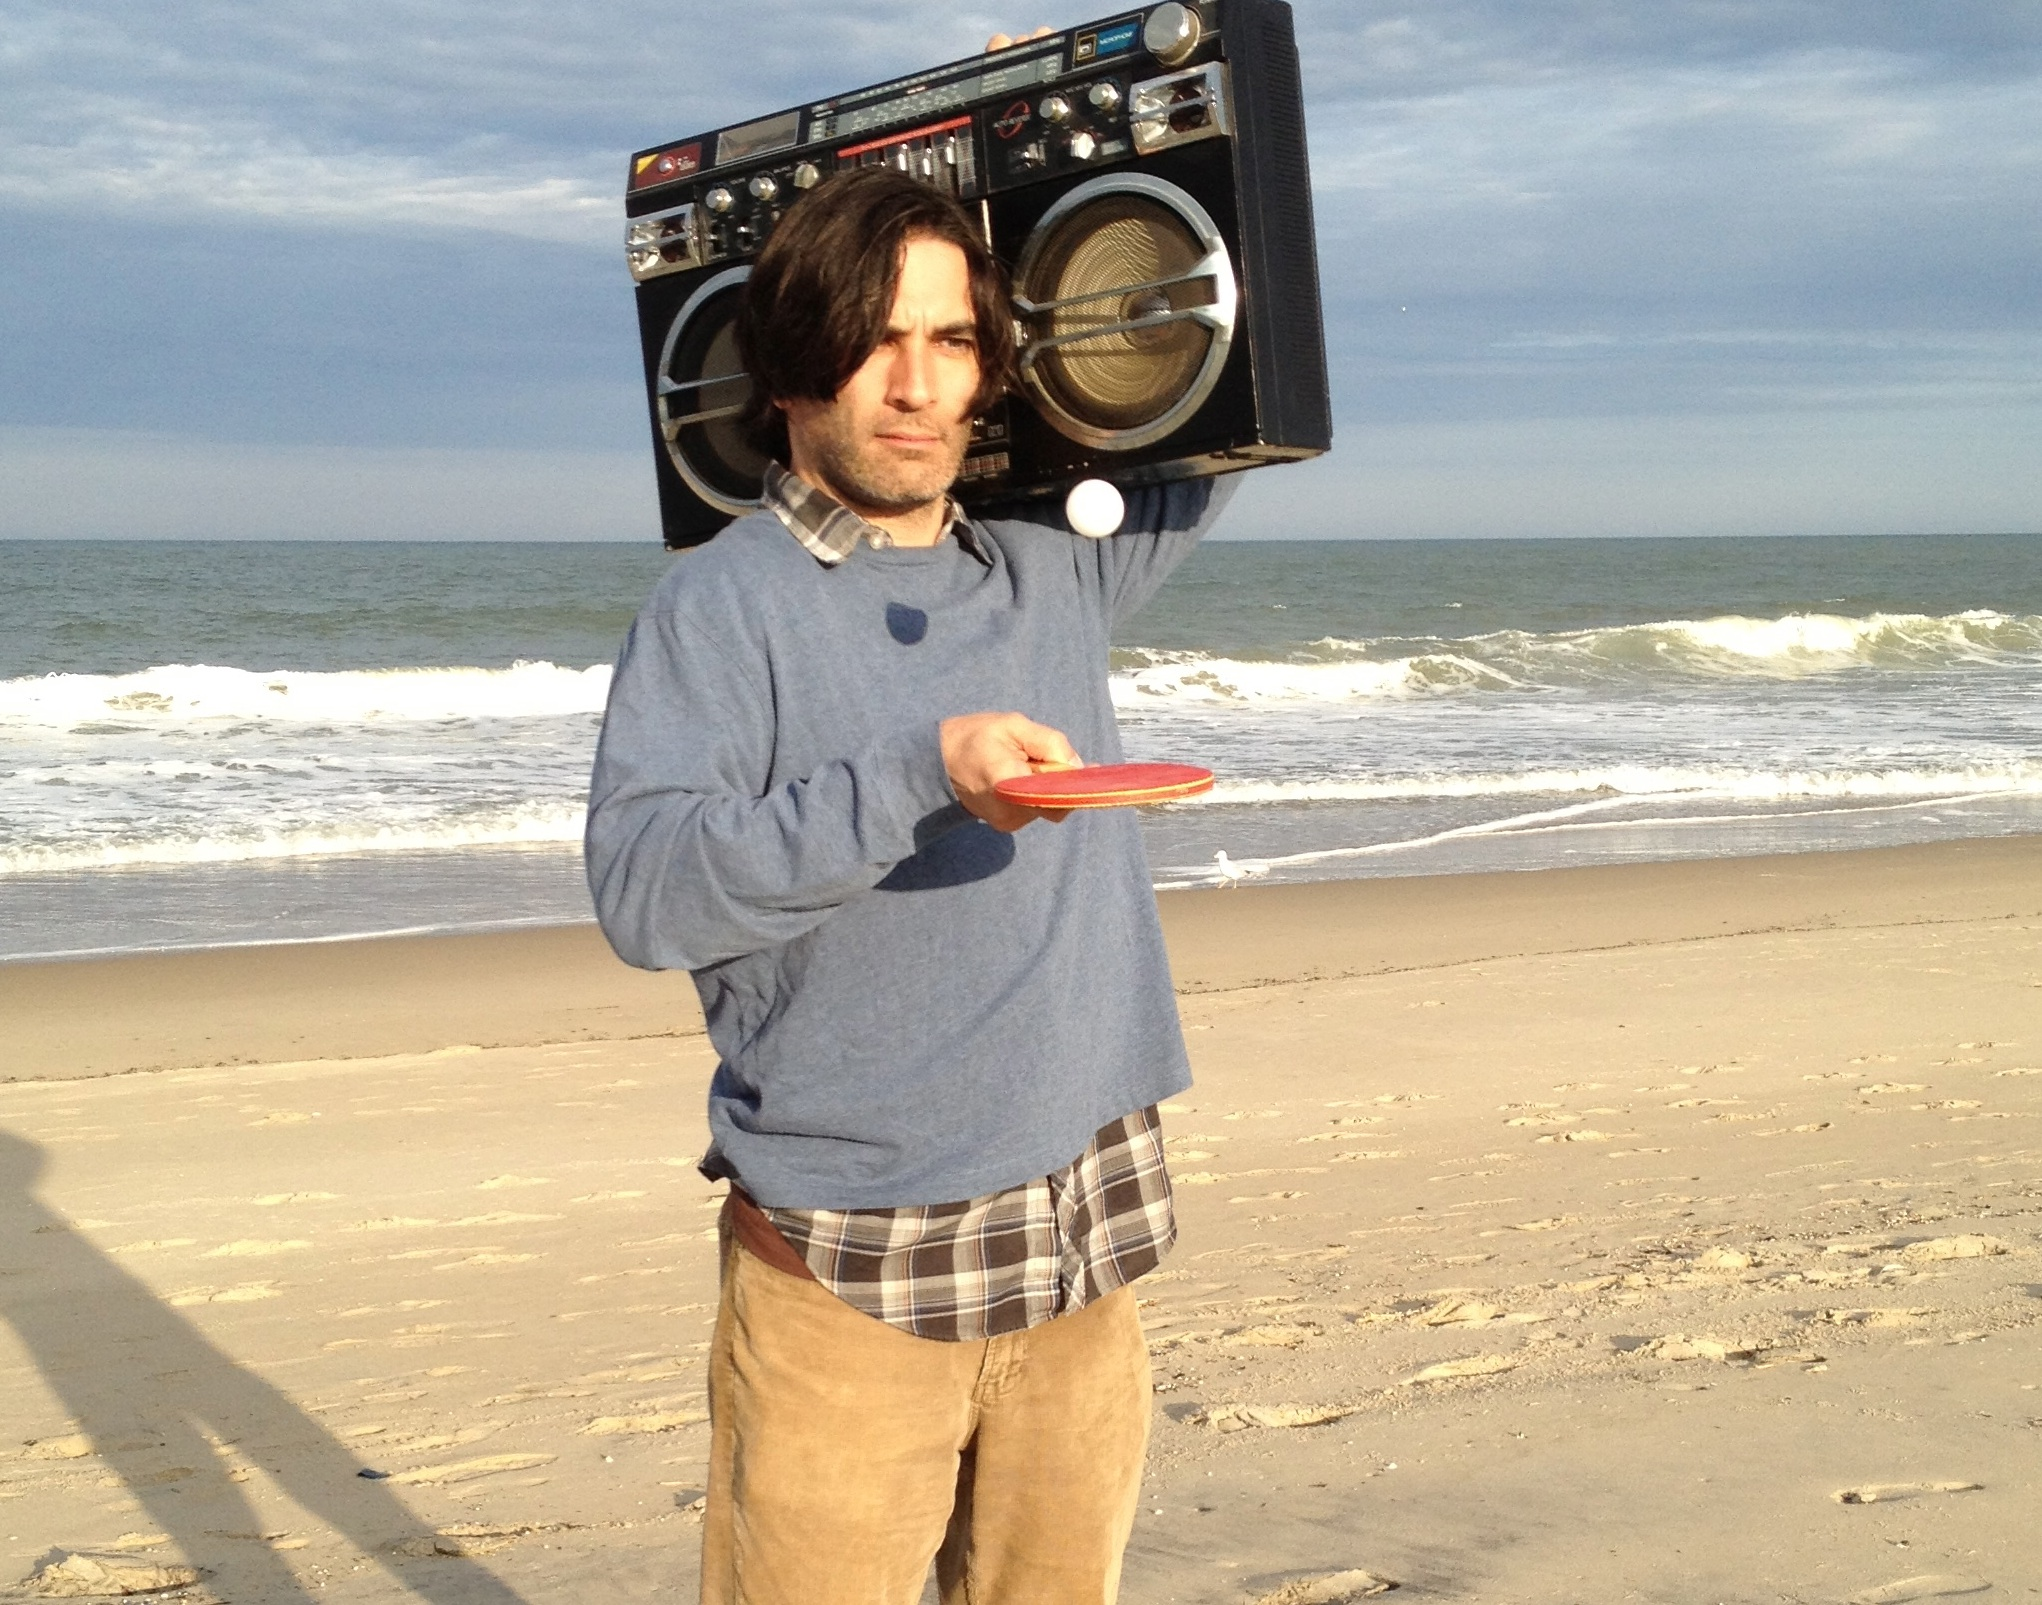 Image of Michael Tully, director of  Ping Pong Summer  on the beach of Ocean City, Maryland via  Google .